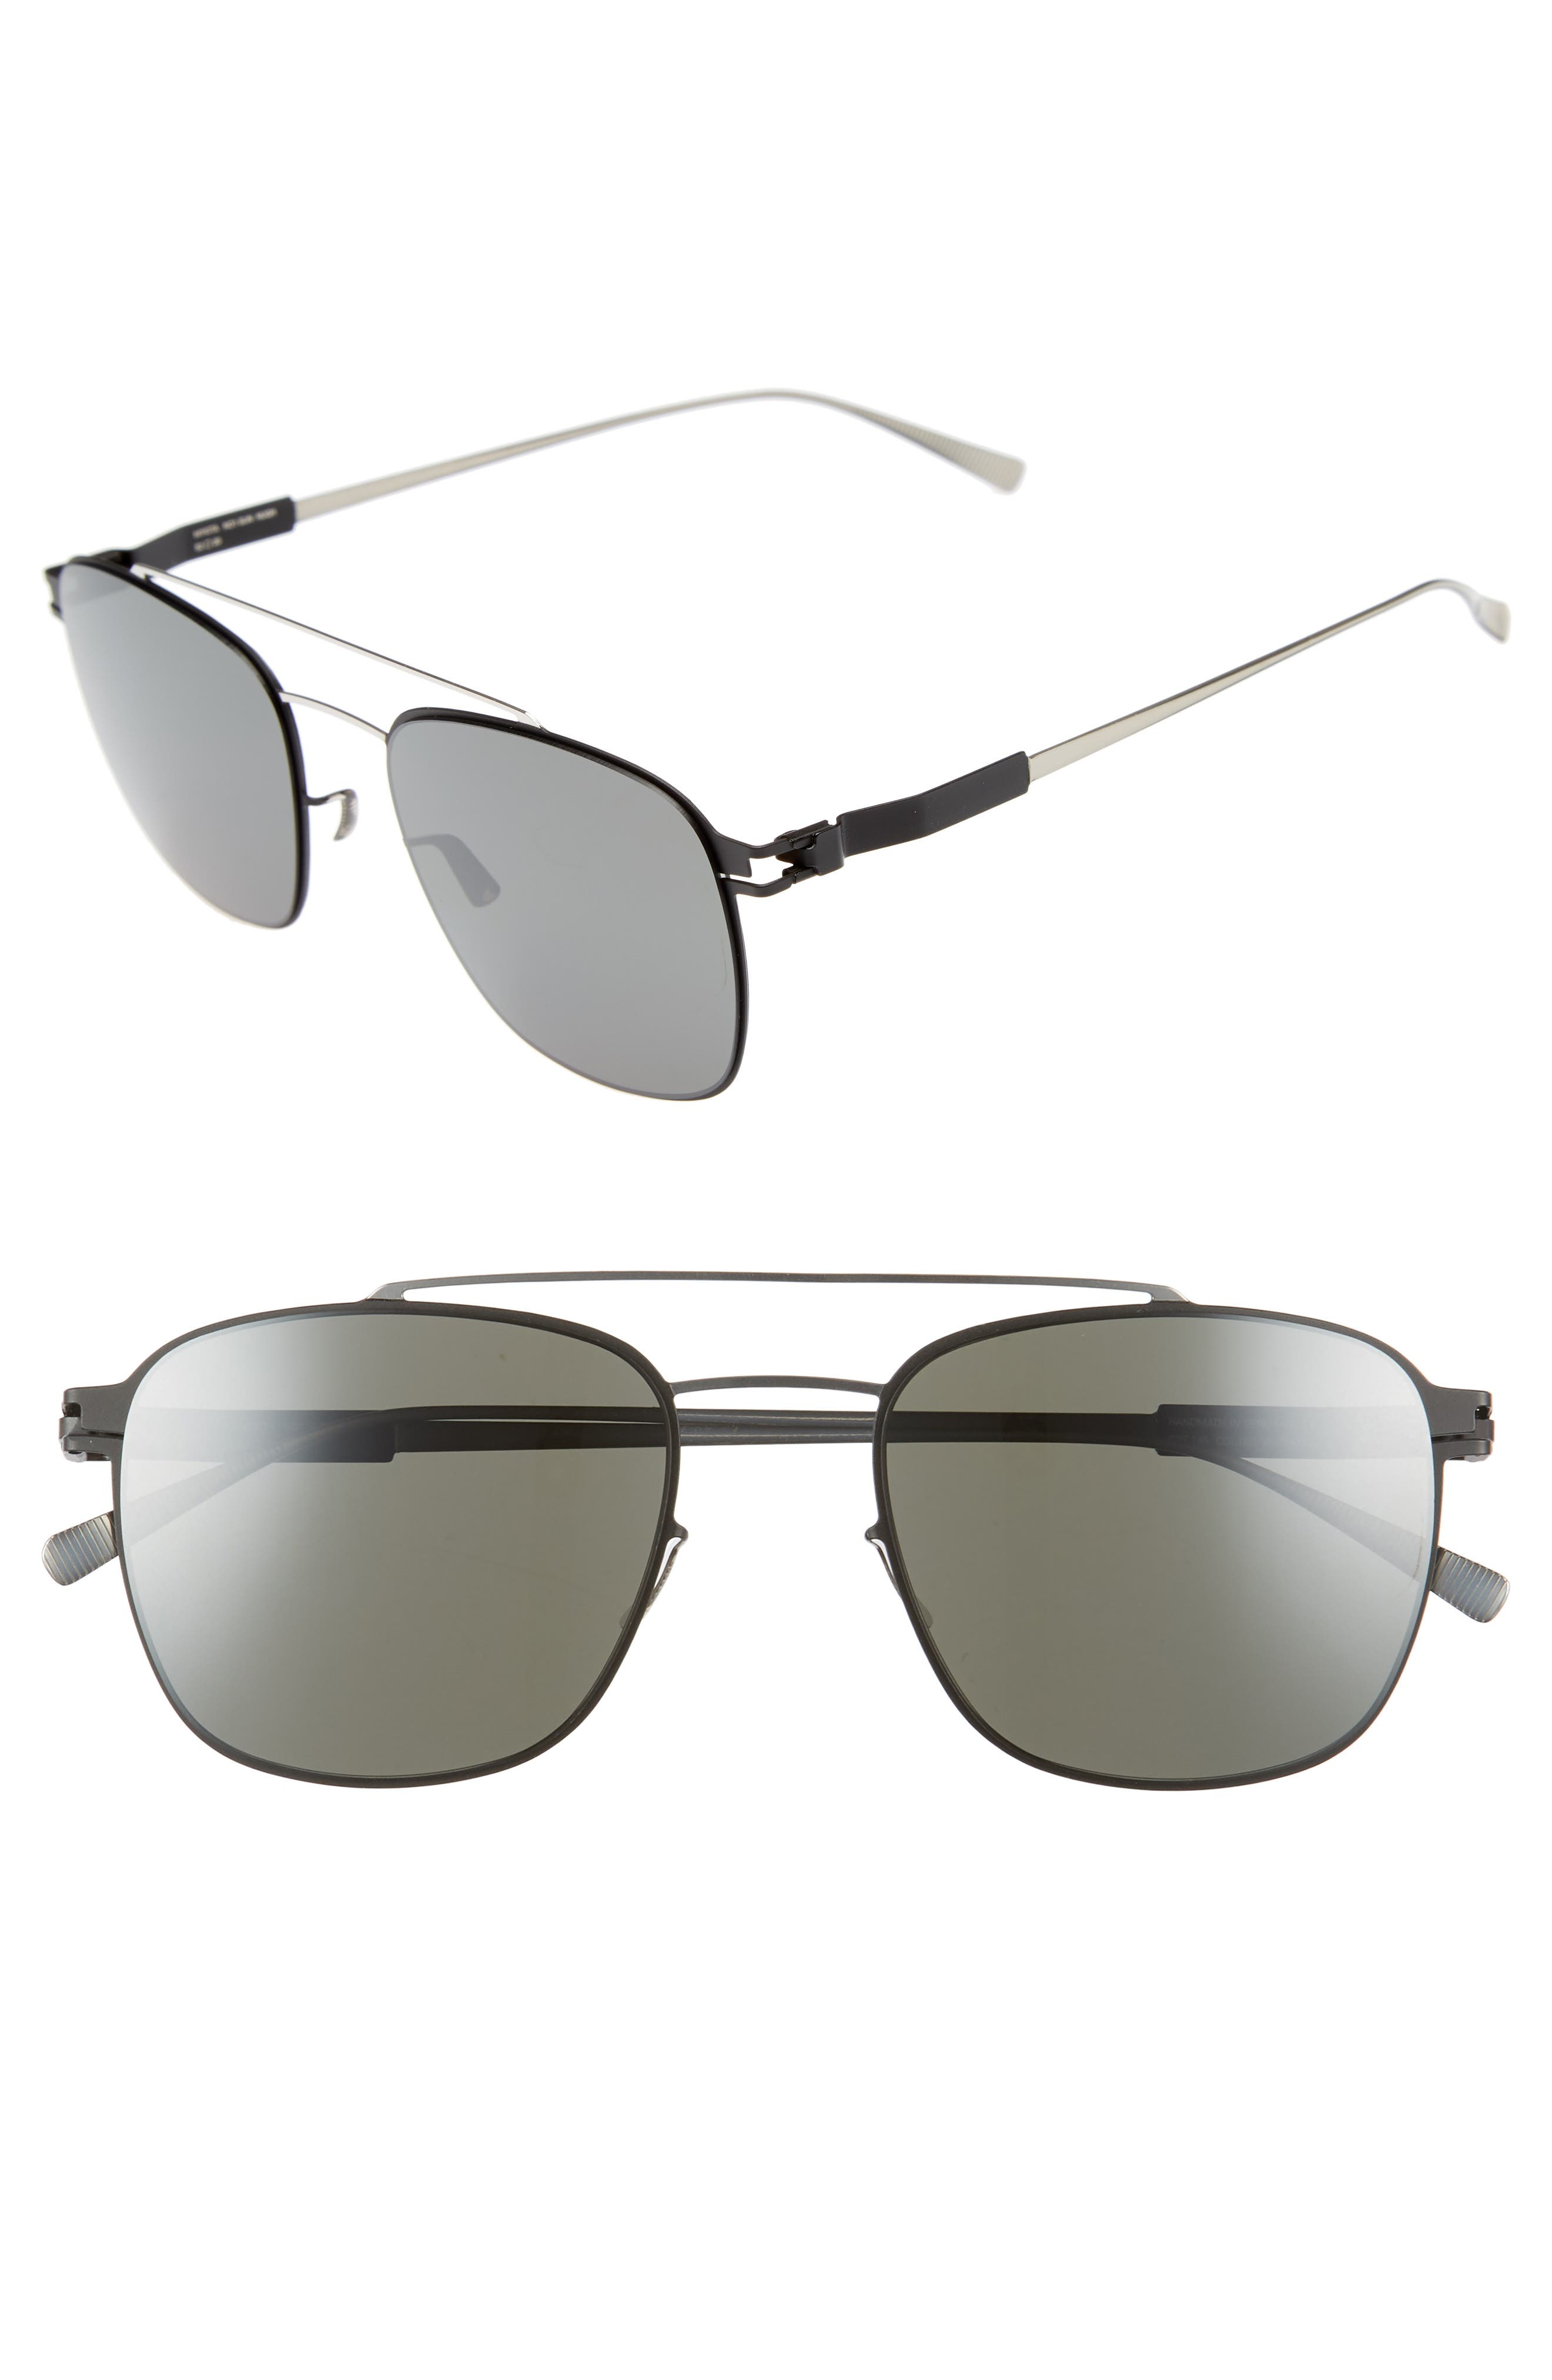 Hugh 52mm Mirrored Sunglasses,                         Main,                         color,